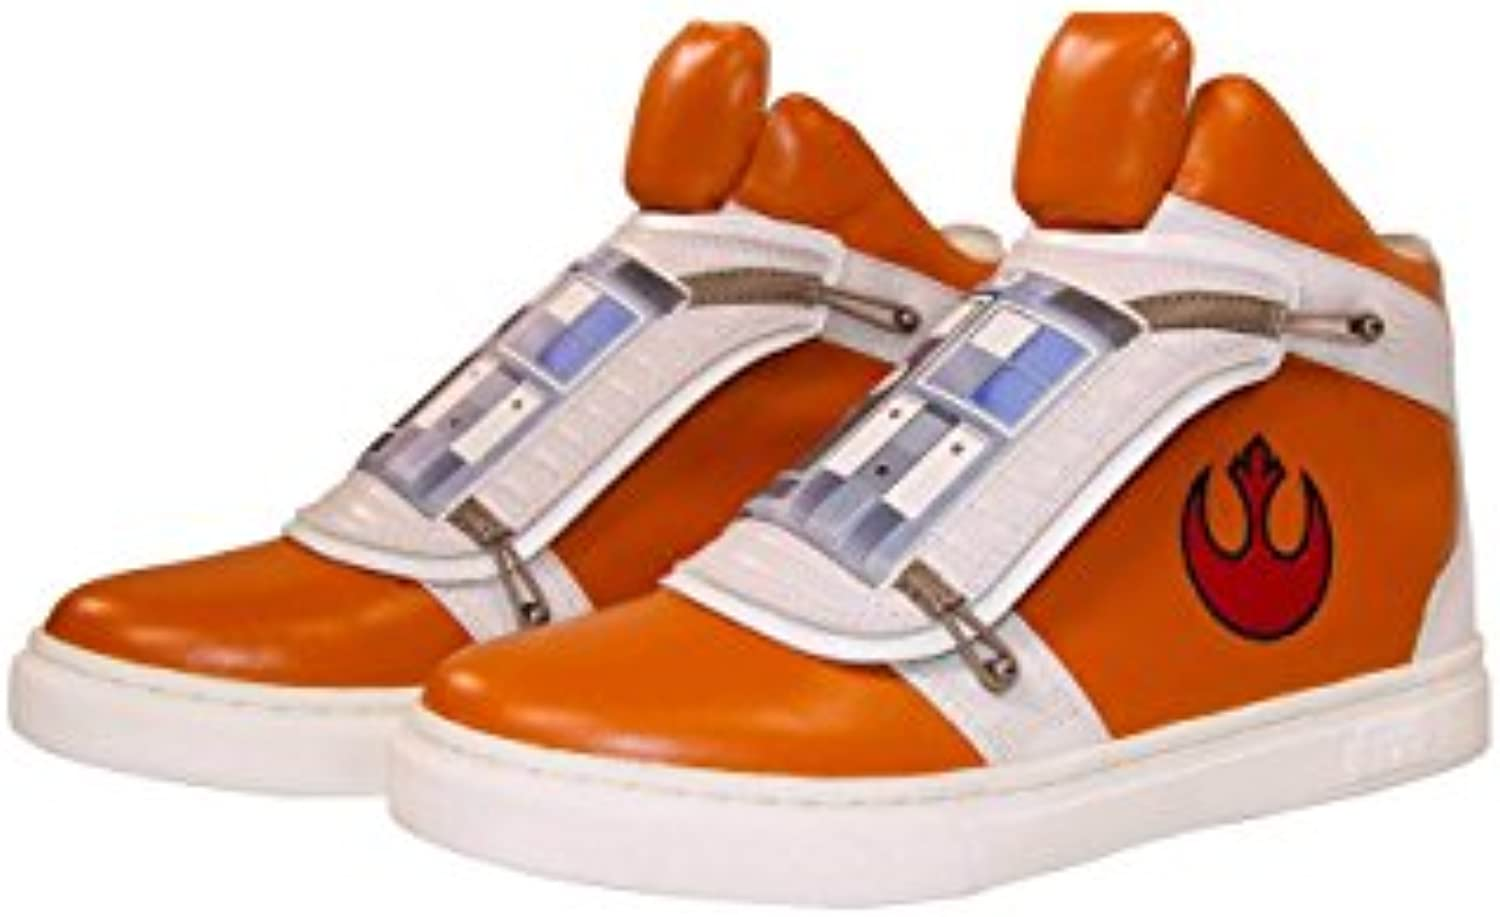 Musterbrand Star Wars Sneakers Unisex Skywalker X Wing High Top Flap Closure Rebel Pilot Design Orange